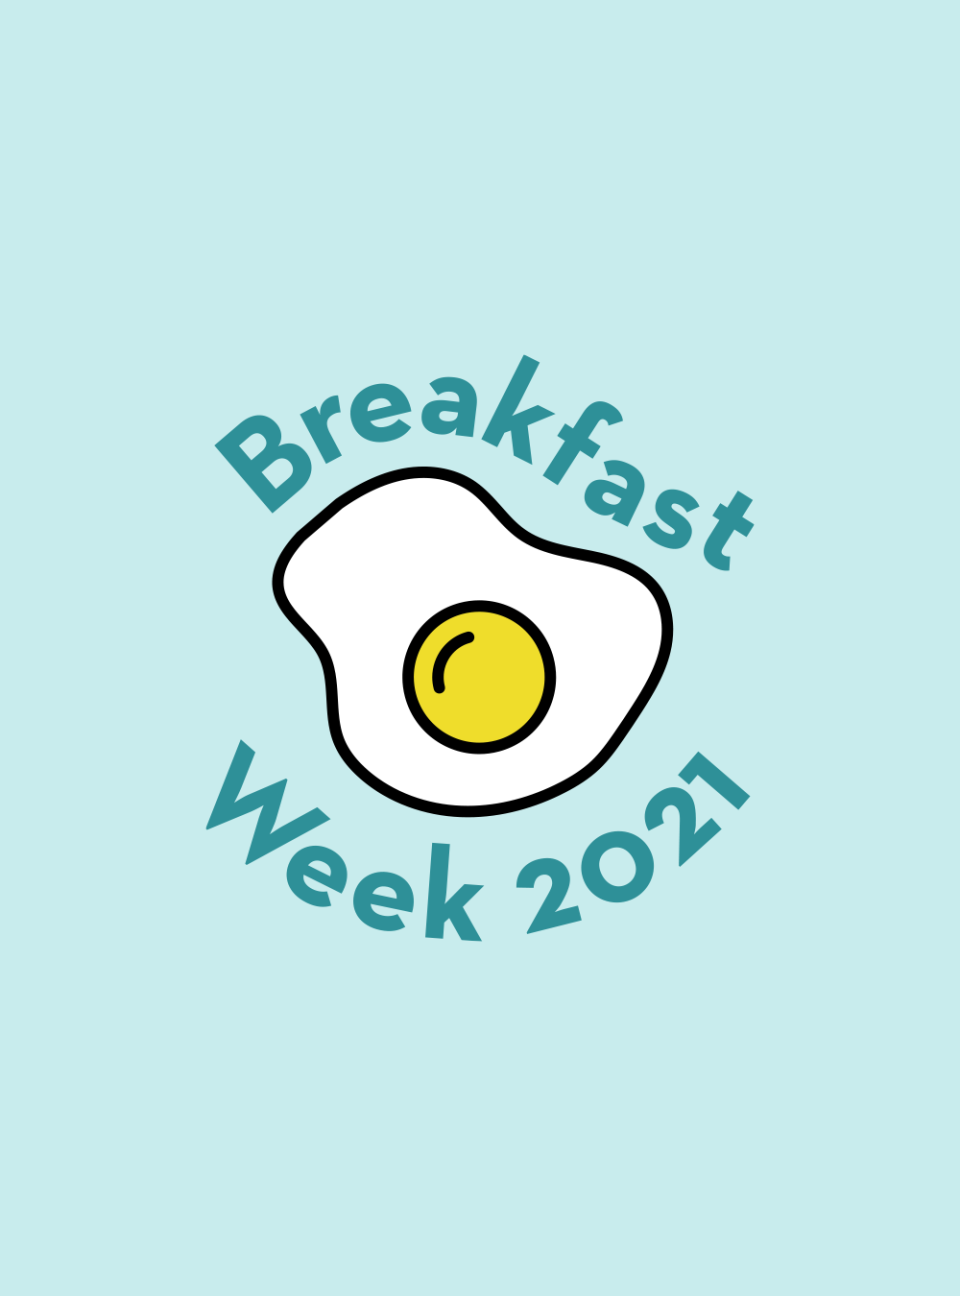 "<p>Our Ultimate Breakfast Guide Is Here</p><p><a class=""link rapid-noclick-resp"" href=""https://www.goodhousekeeping.com/breakfast-week/"" rel=""nofollow noopener"" target=""_blank"" data-ylk=""slk:READ MORE"">READ MORE</a></p>"